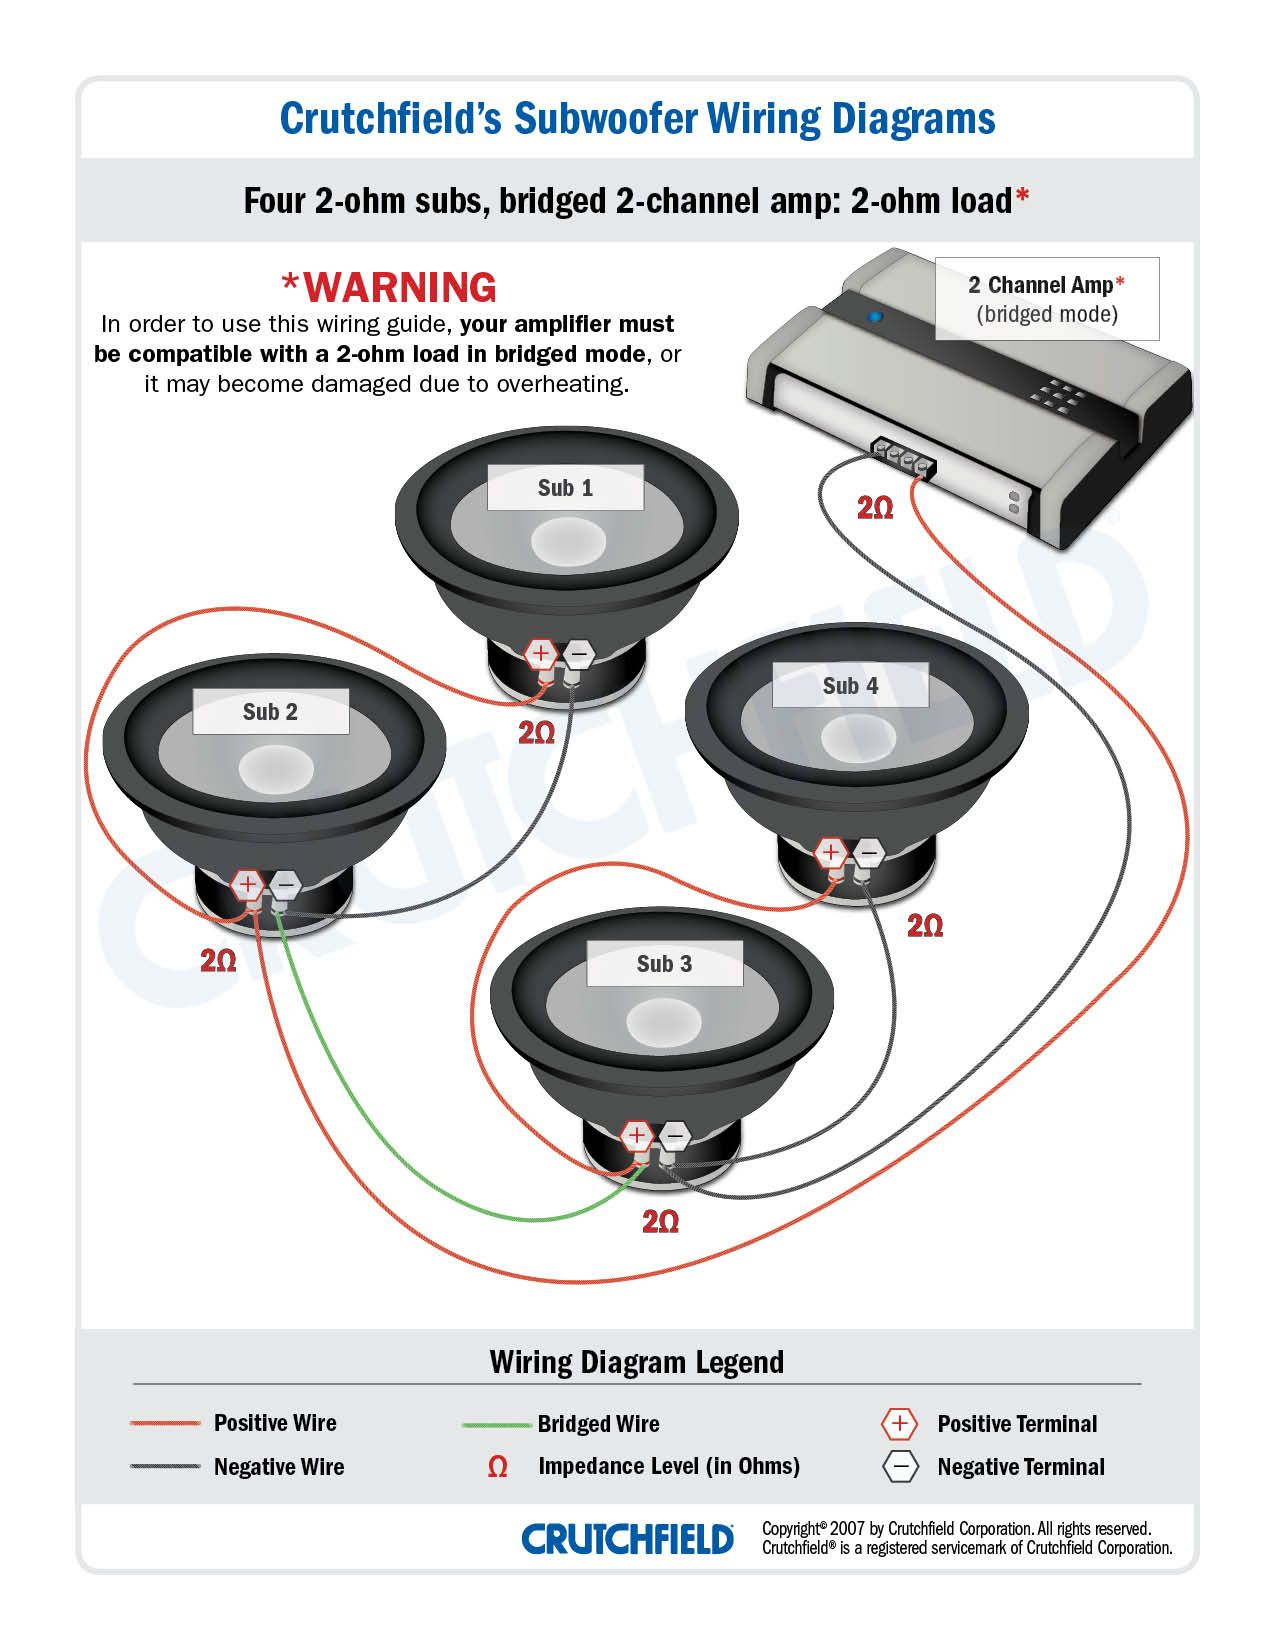 top 10 subwoofer wiring diagram free download 4 svc 2 ohm 2 ch low rh pinterest com crutchfield wiring diagrams subwoofer crutchfield wiring diagram speakers